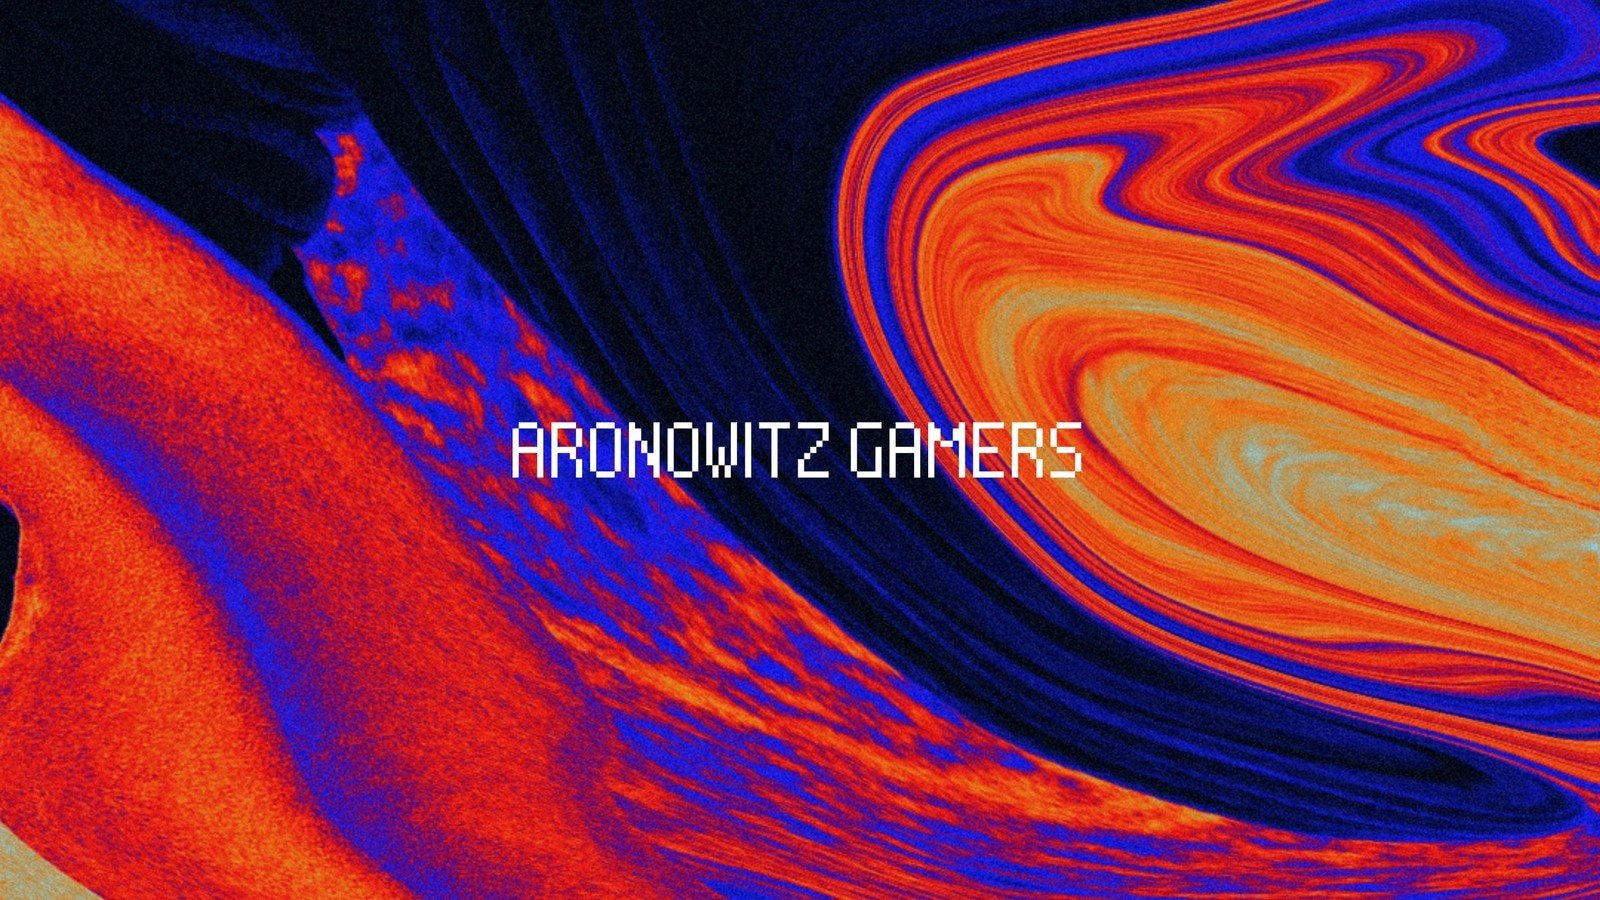 Colorful Neon Marble Gaming YouTube Channel Art